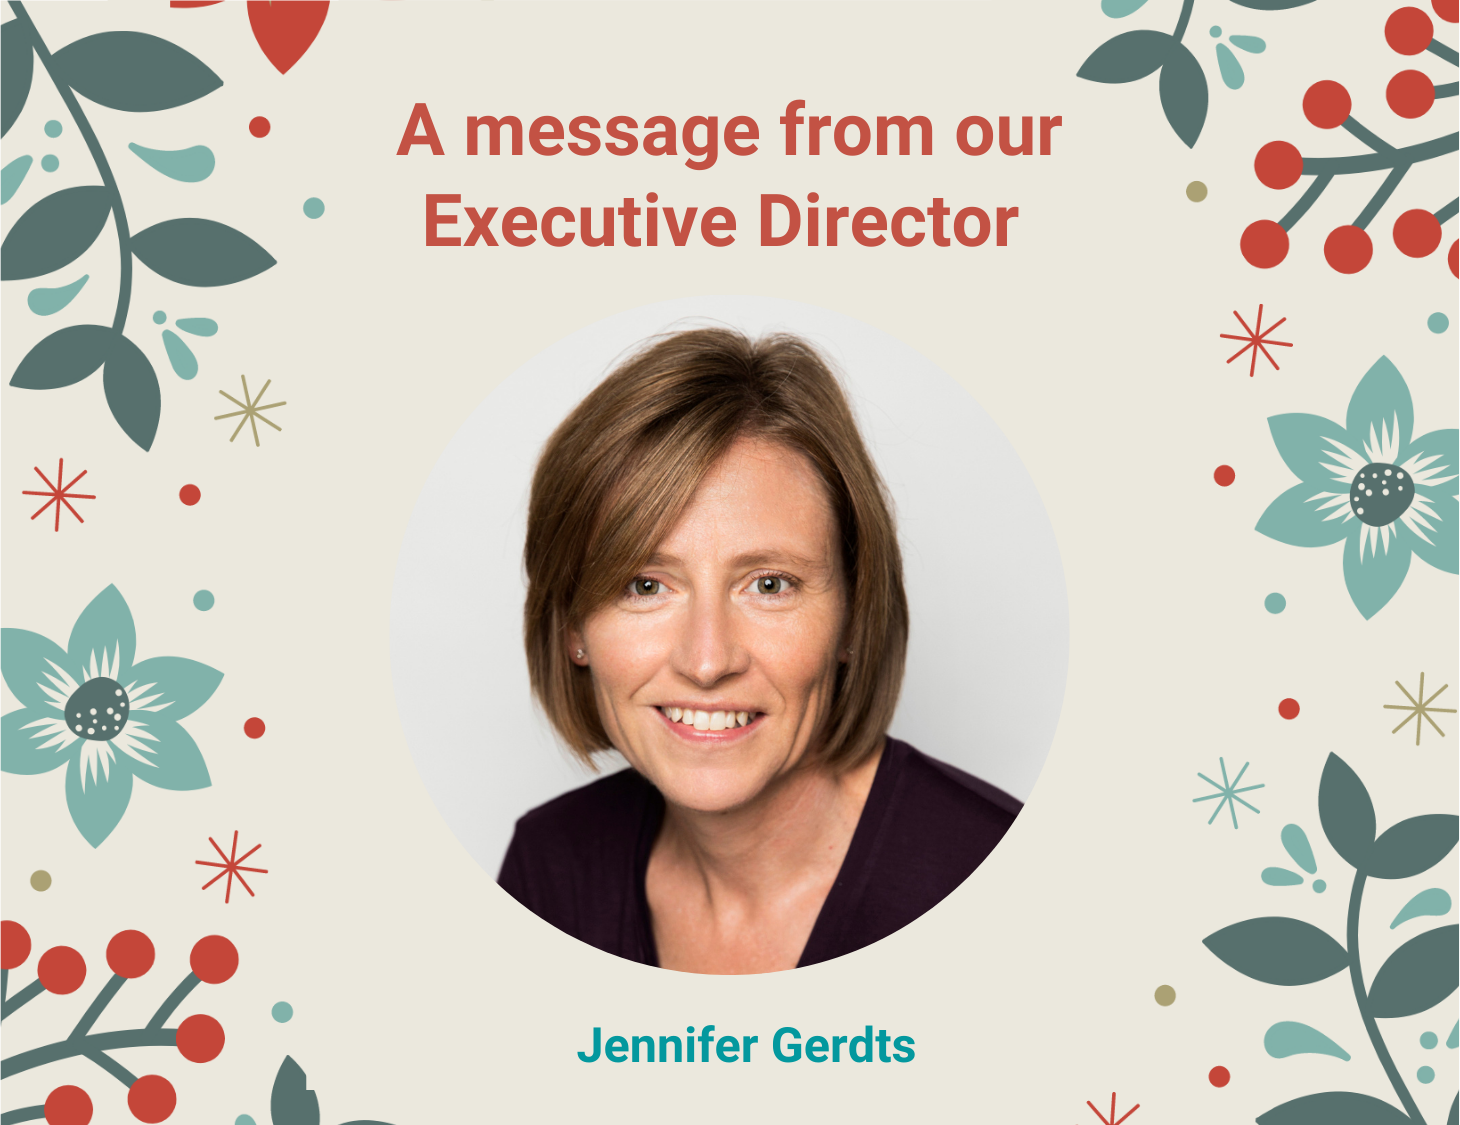 A message from our Executive Director Jennifer Gerdts